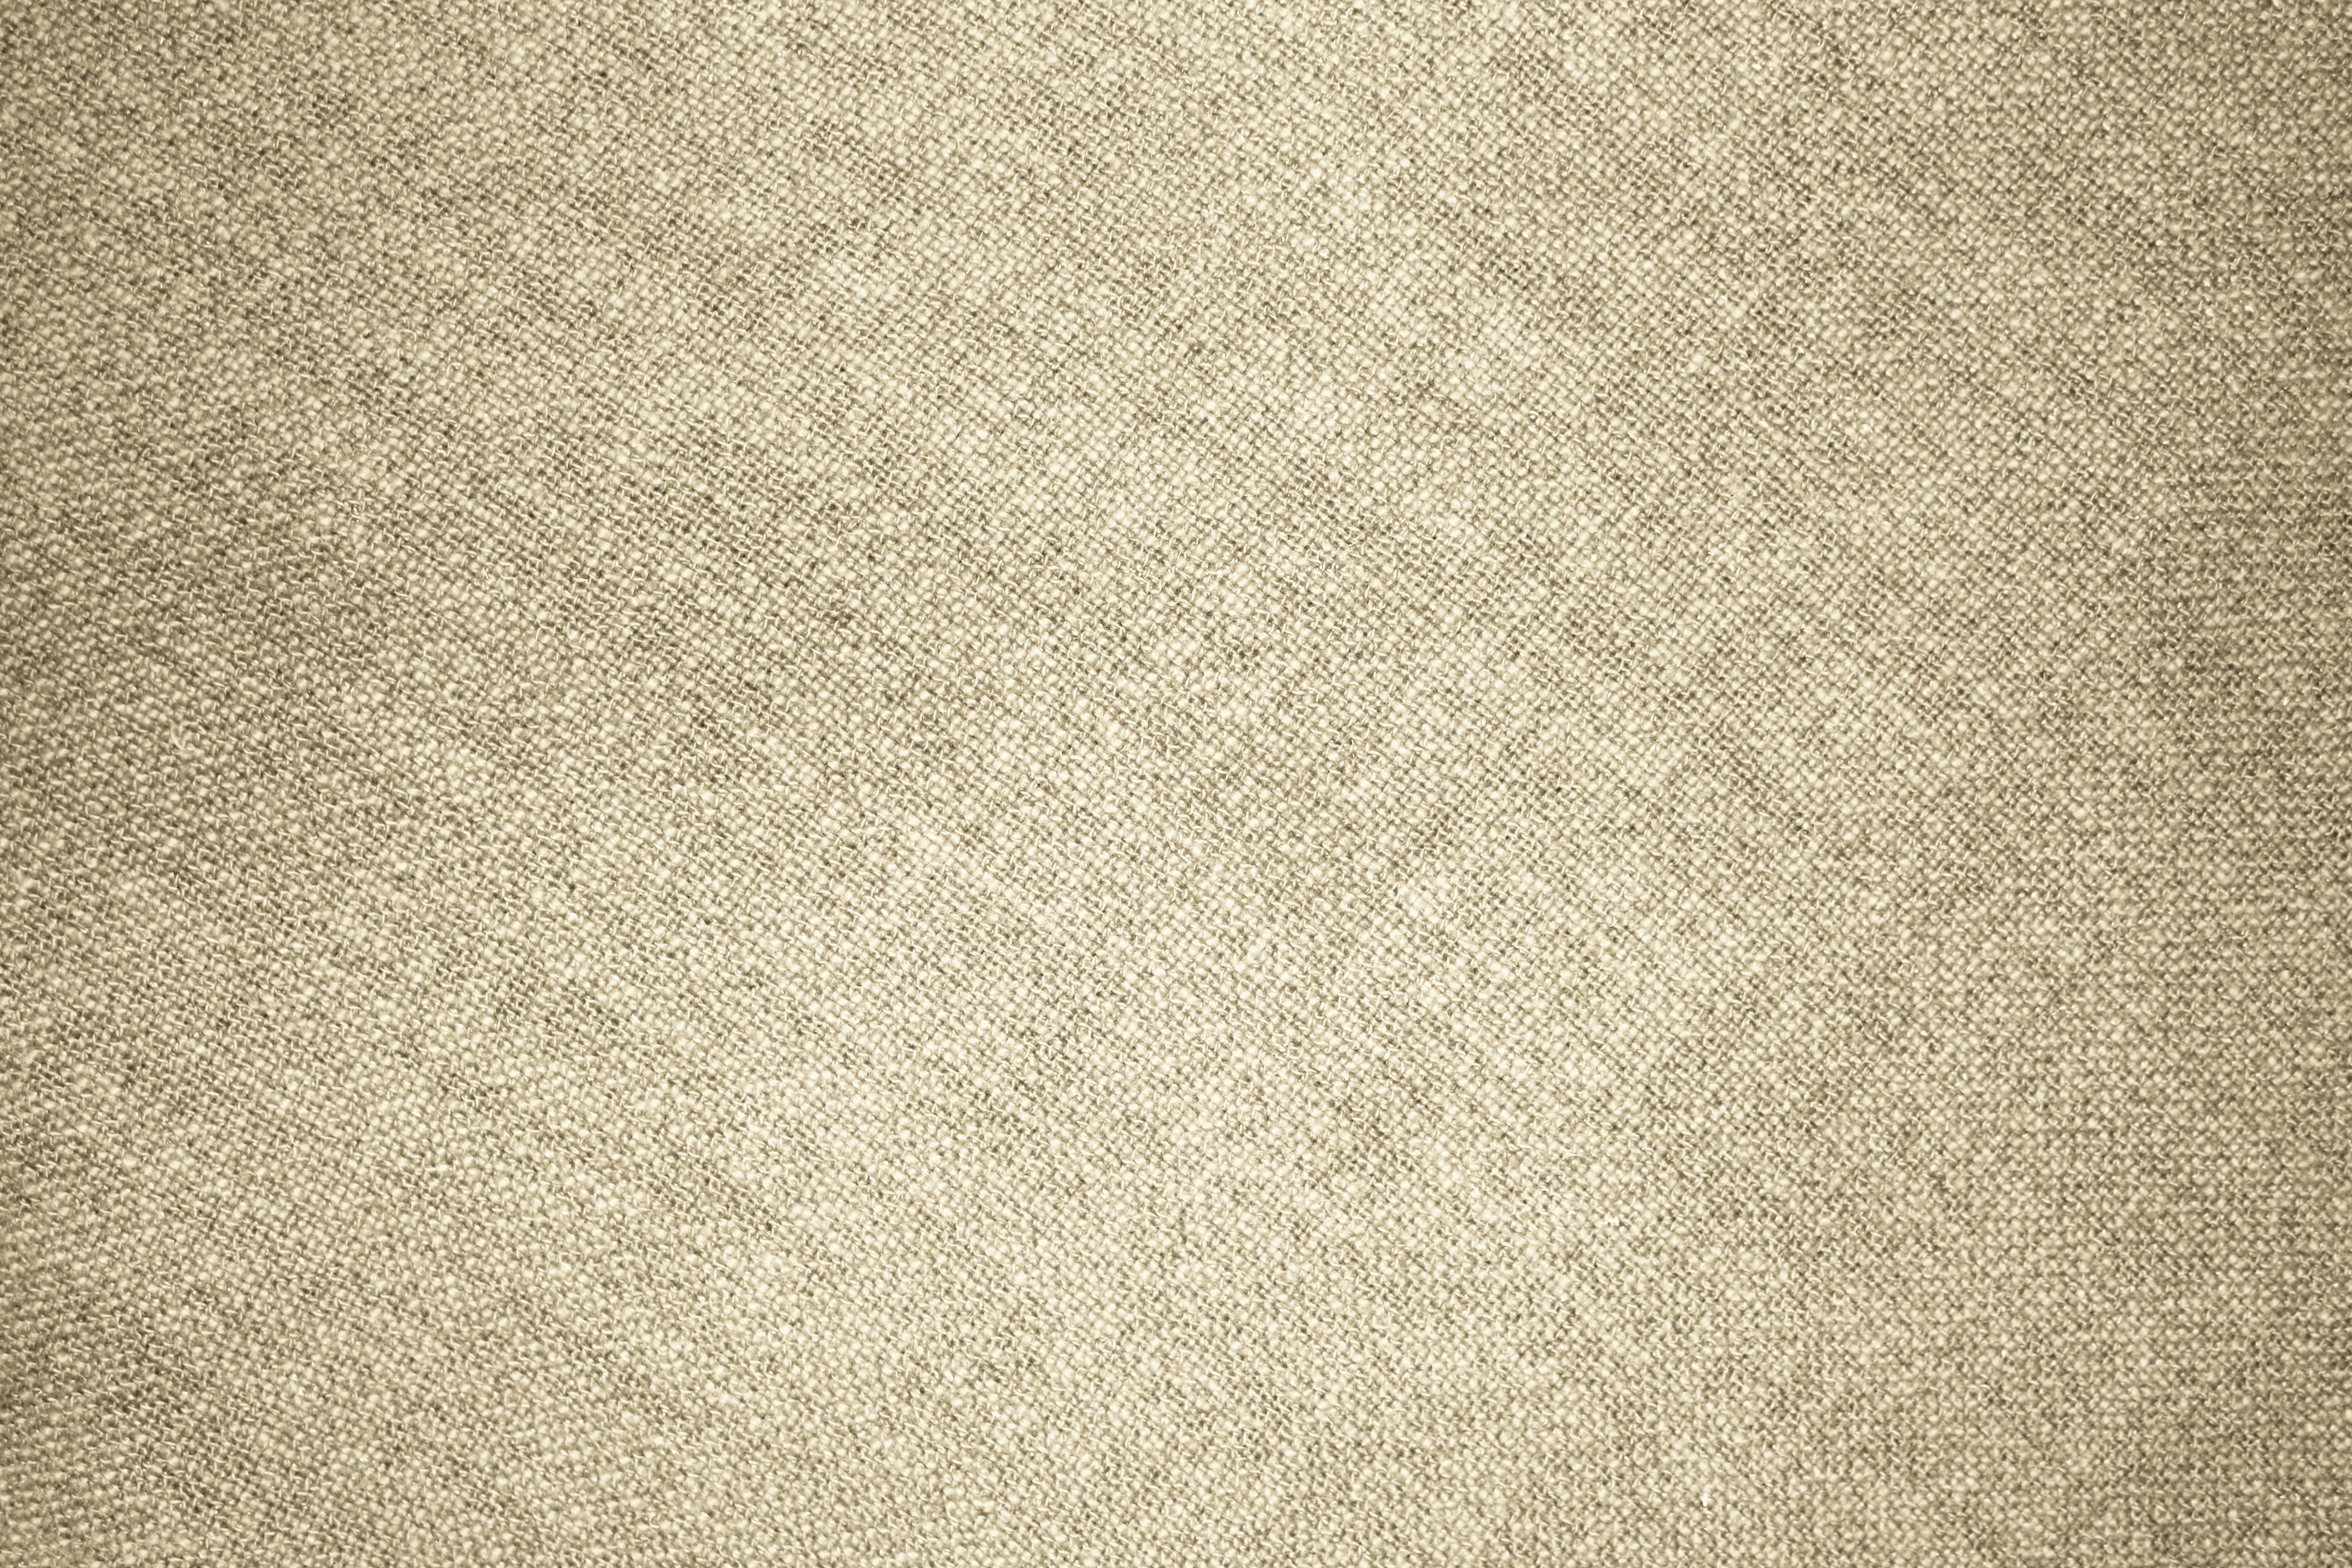 Beige Textured Background Images